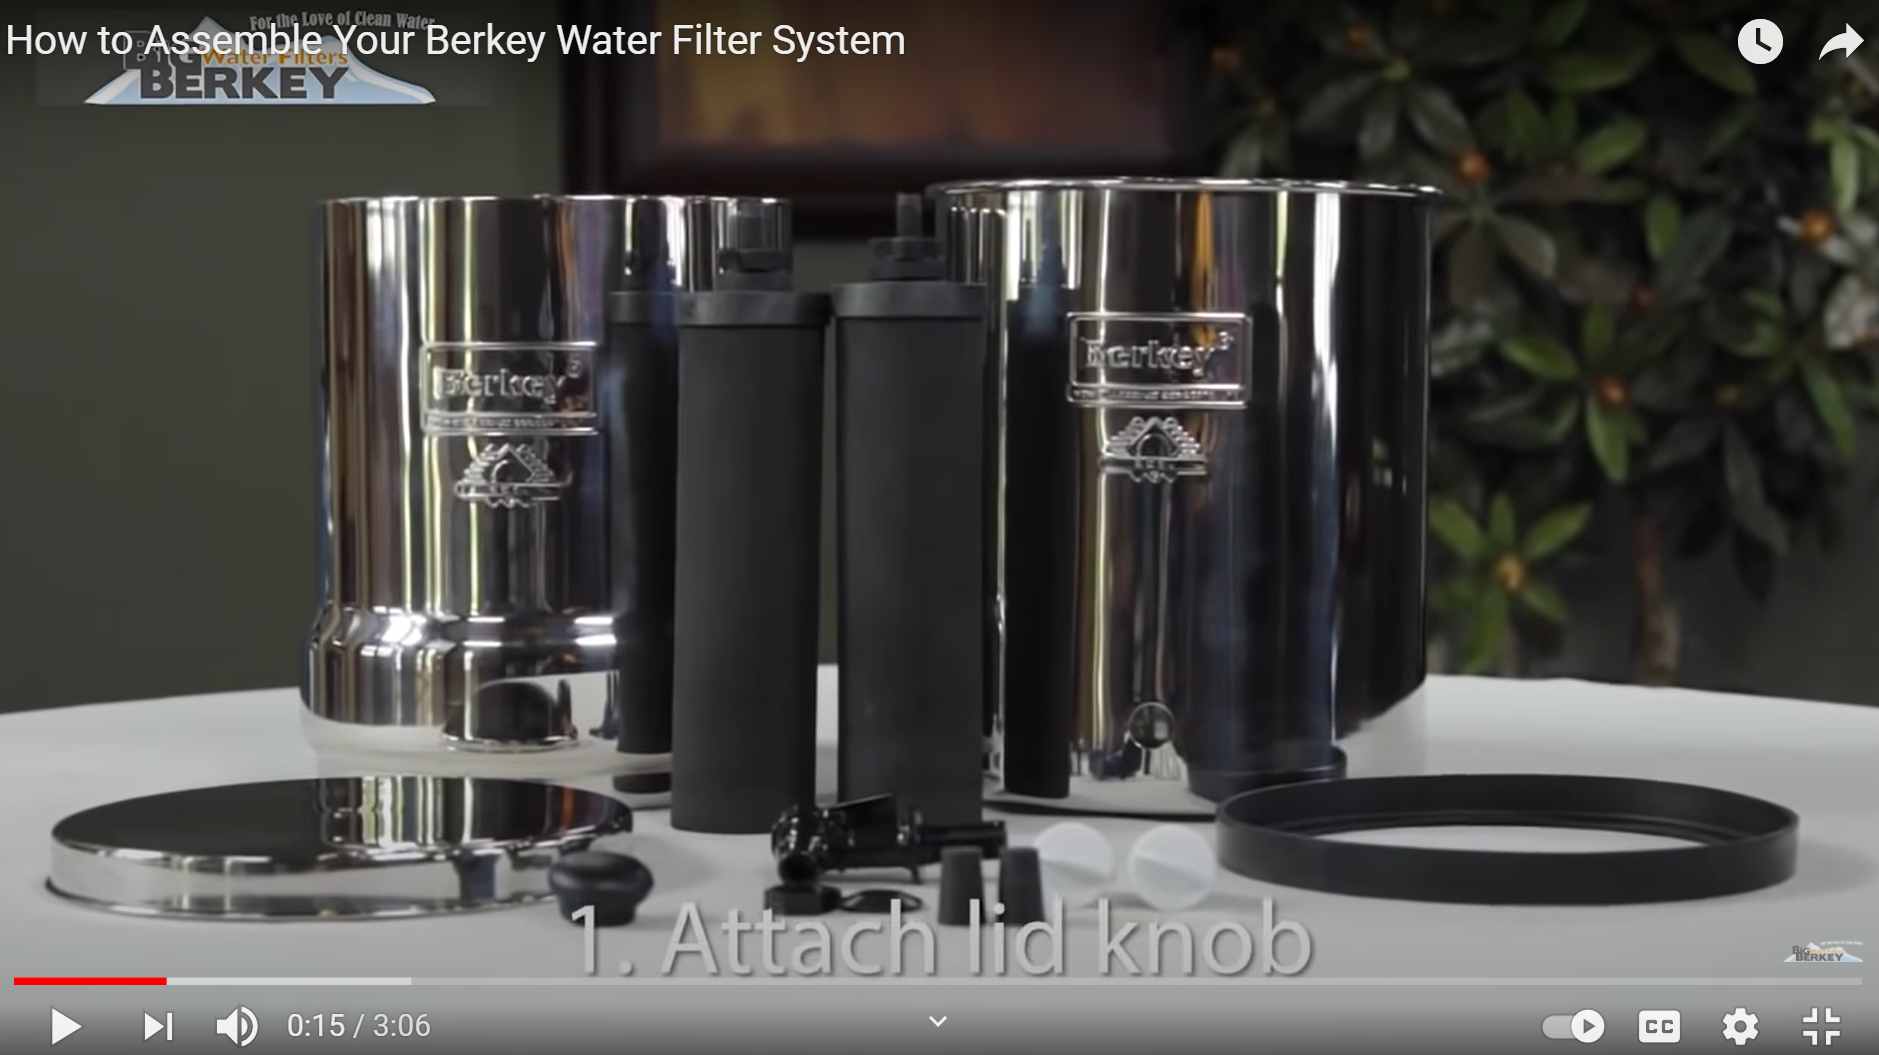 Screenshot for the video How to Assemble Your Berkey Water Filter System